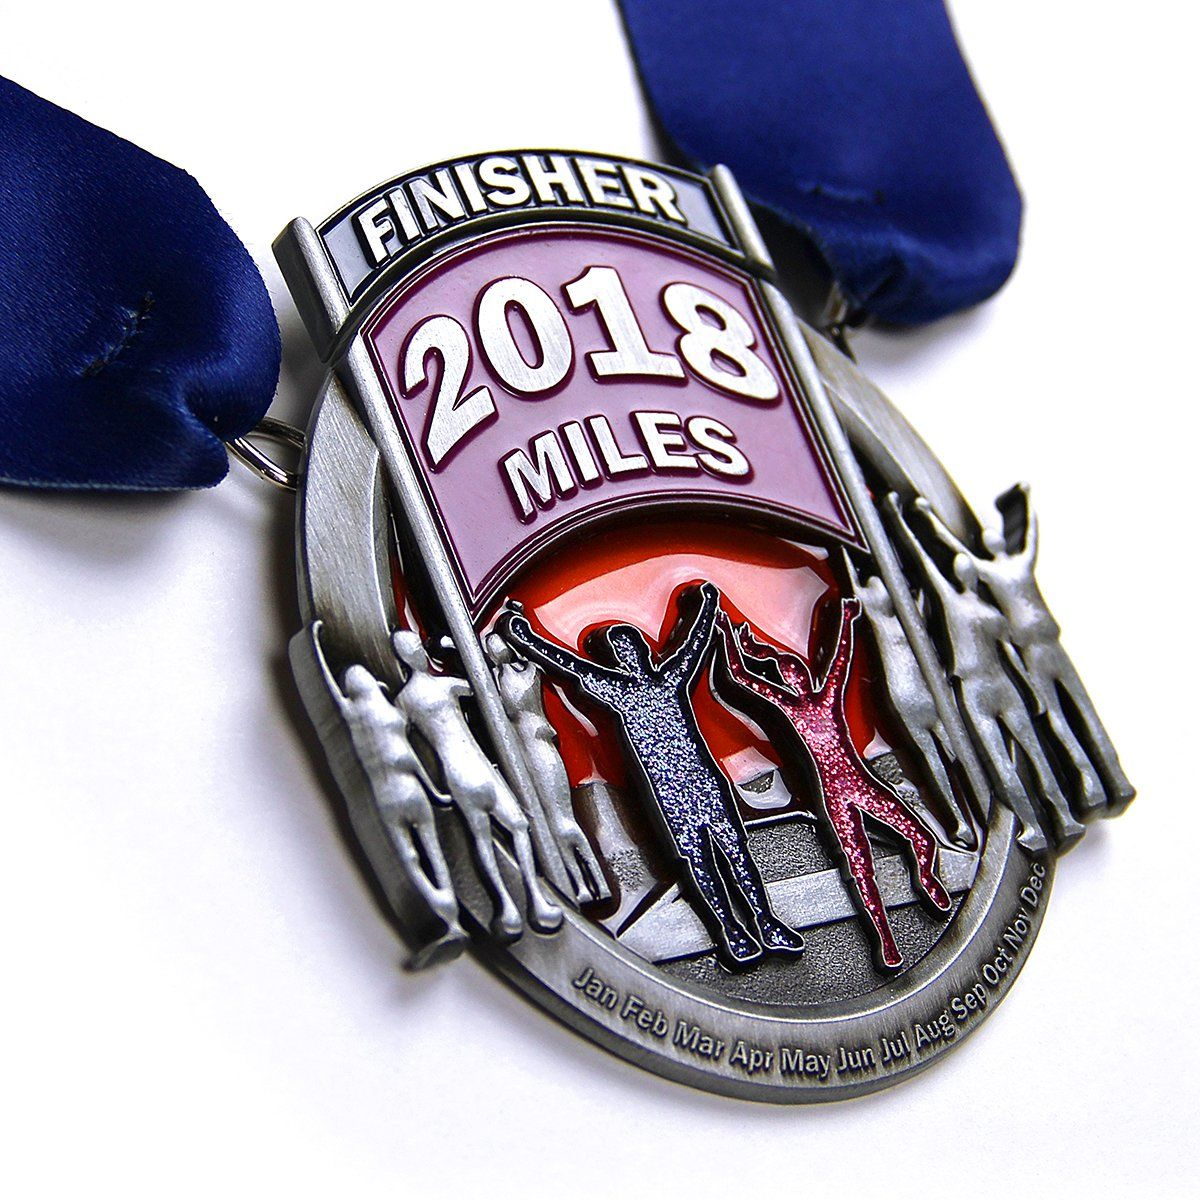 Run The Year 2018 Medal Medals Run The Edge